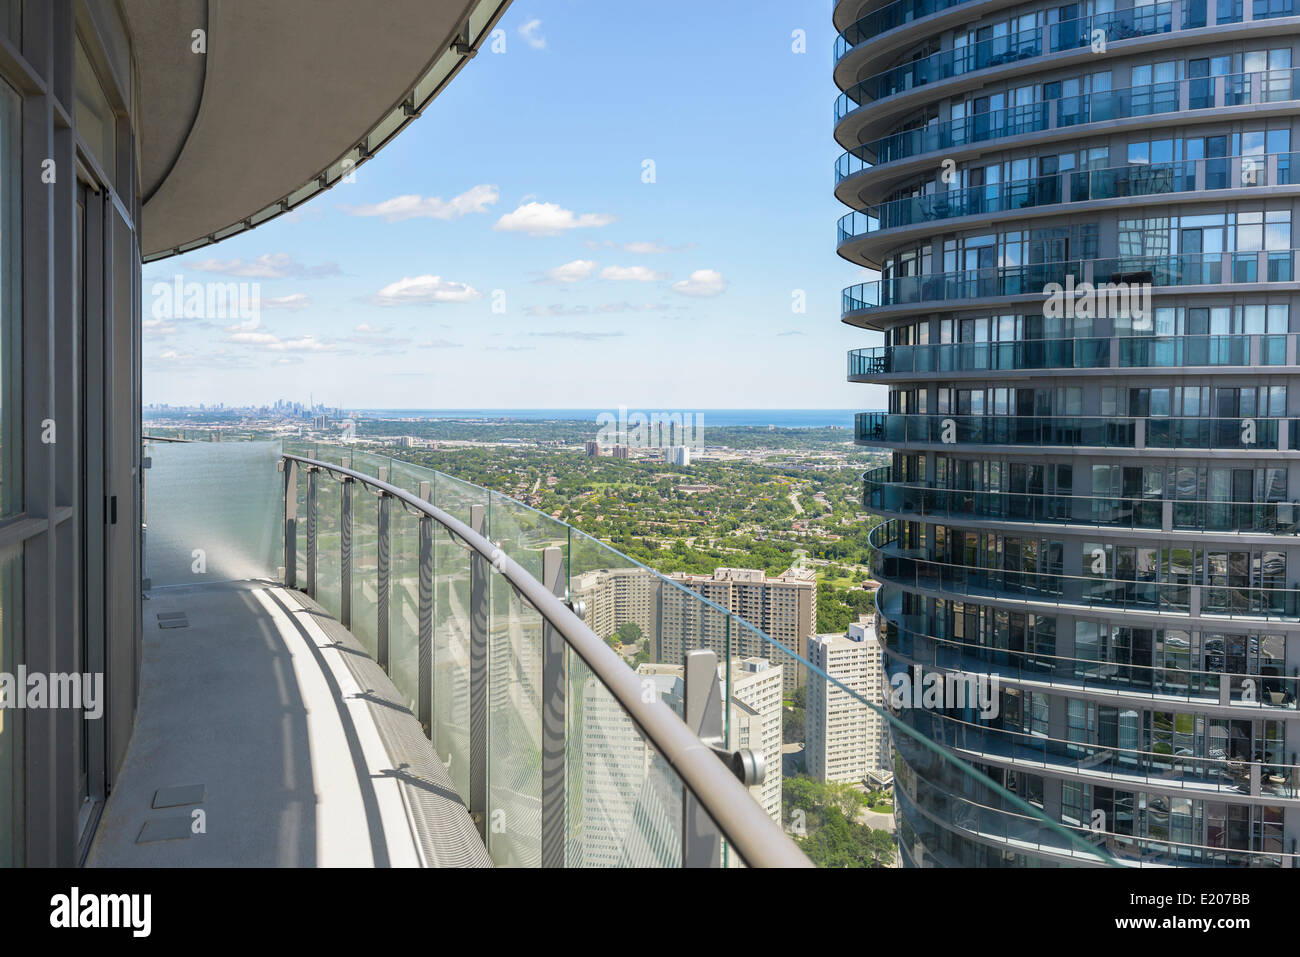 Absolute Towers, Mississauga, Canada. Architect: MAD Architects, 2012. - Stock Image